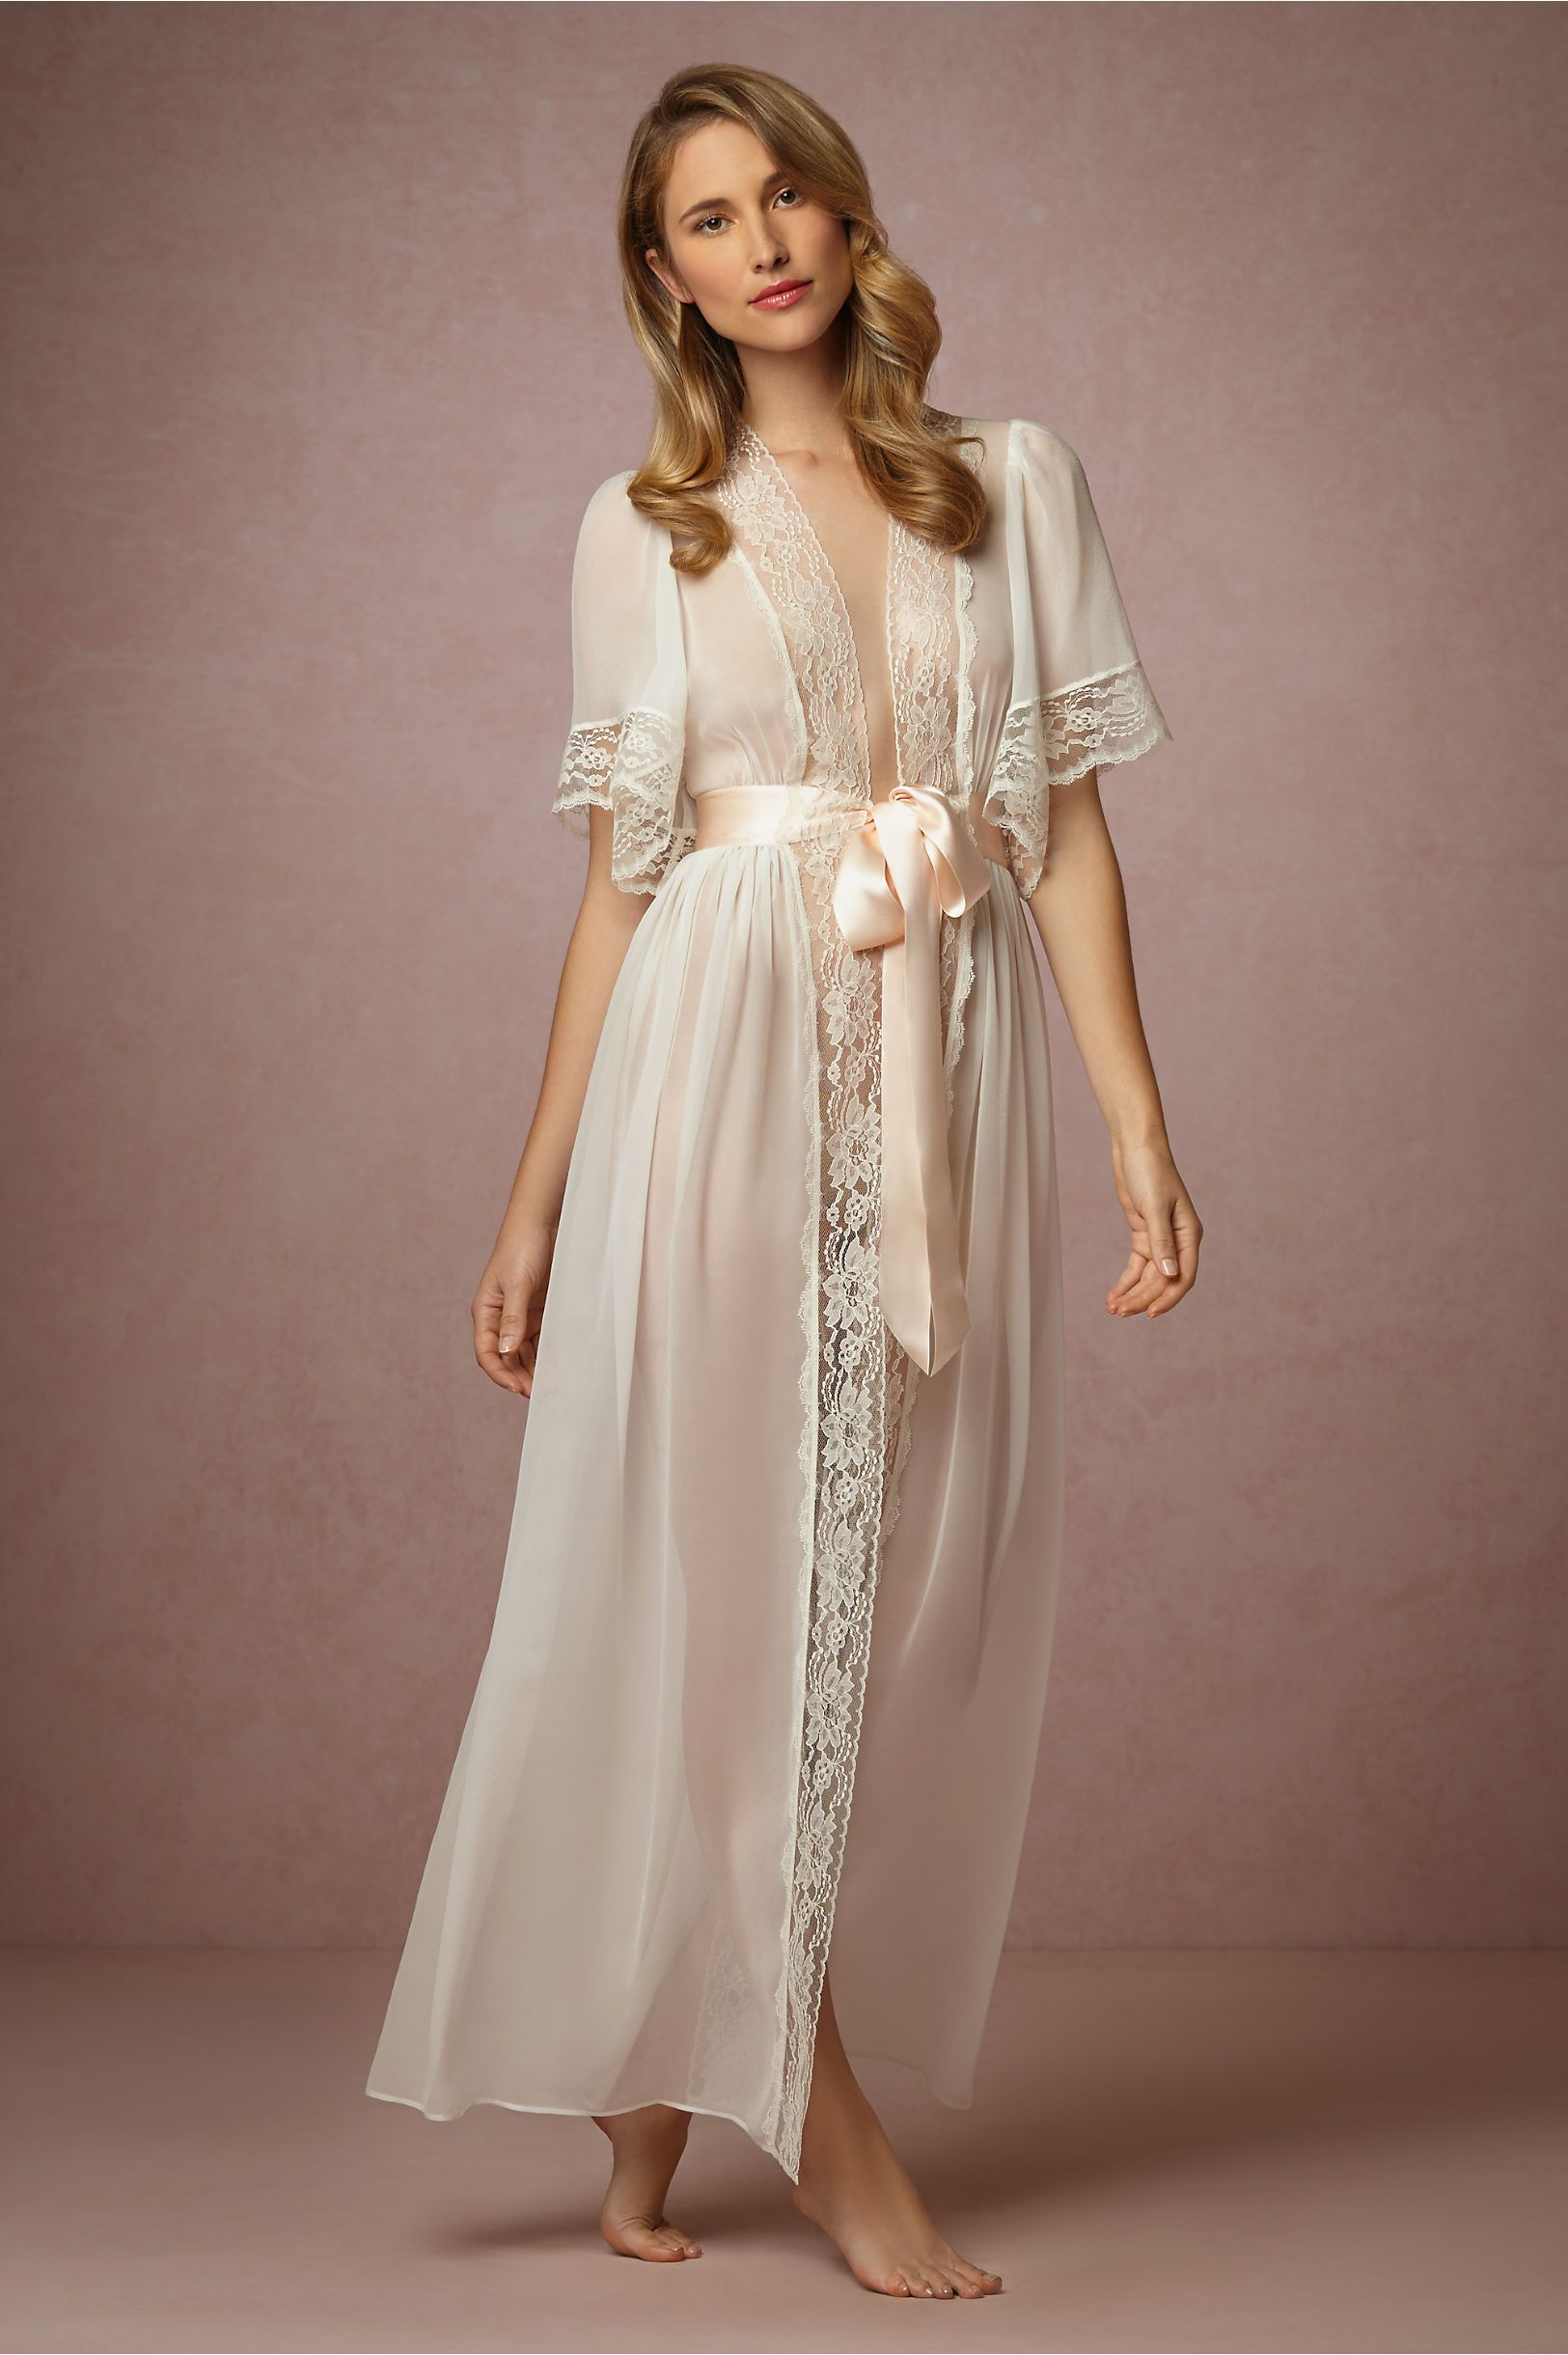 6a1c1615ccc Starlet Robe in Lingerie Chemises   Robes at BHLDN For the Bride to ...